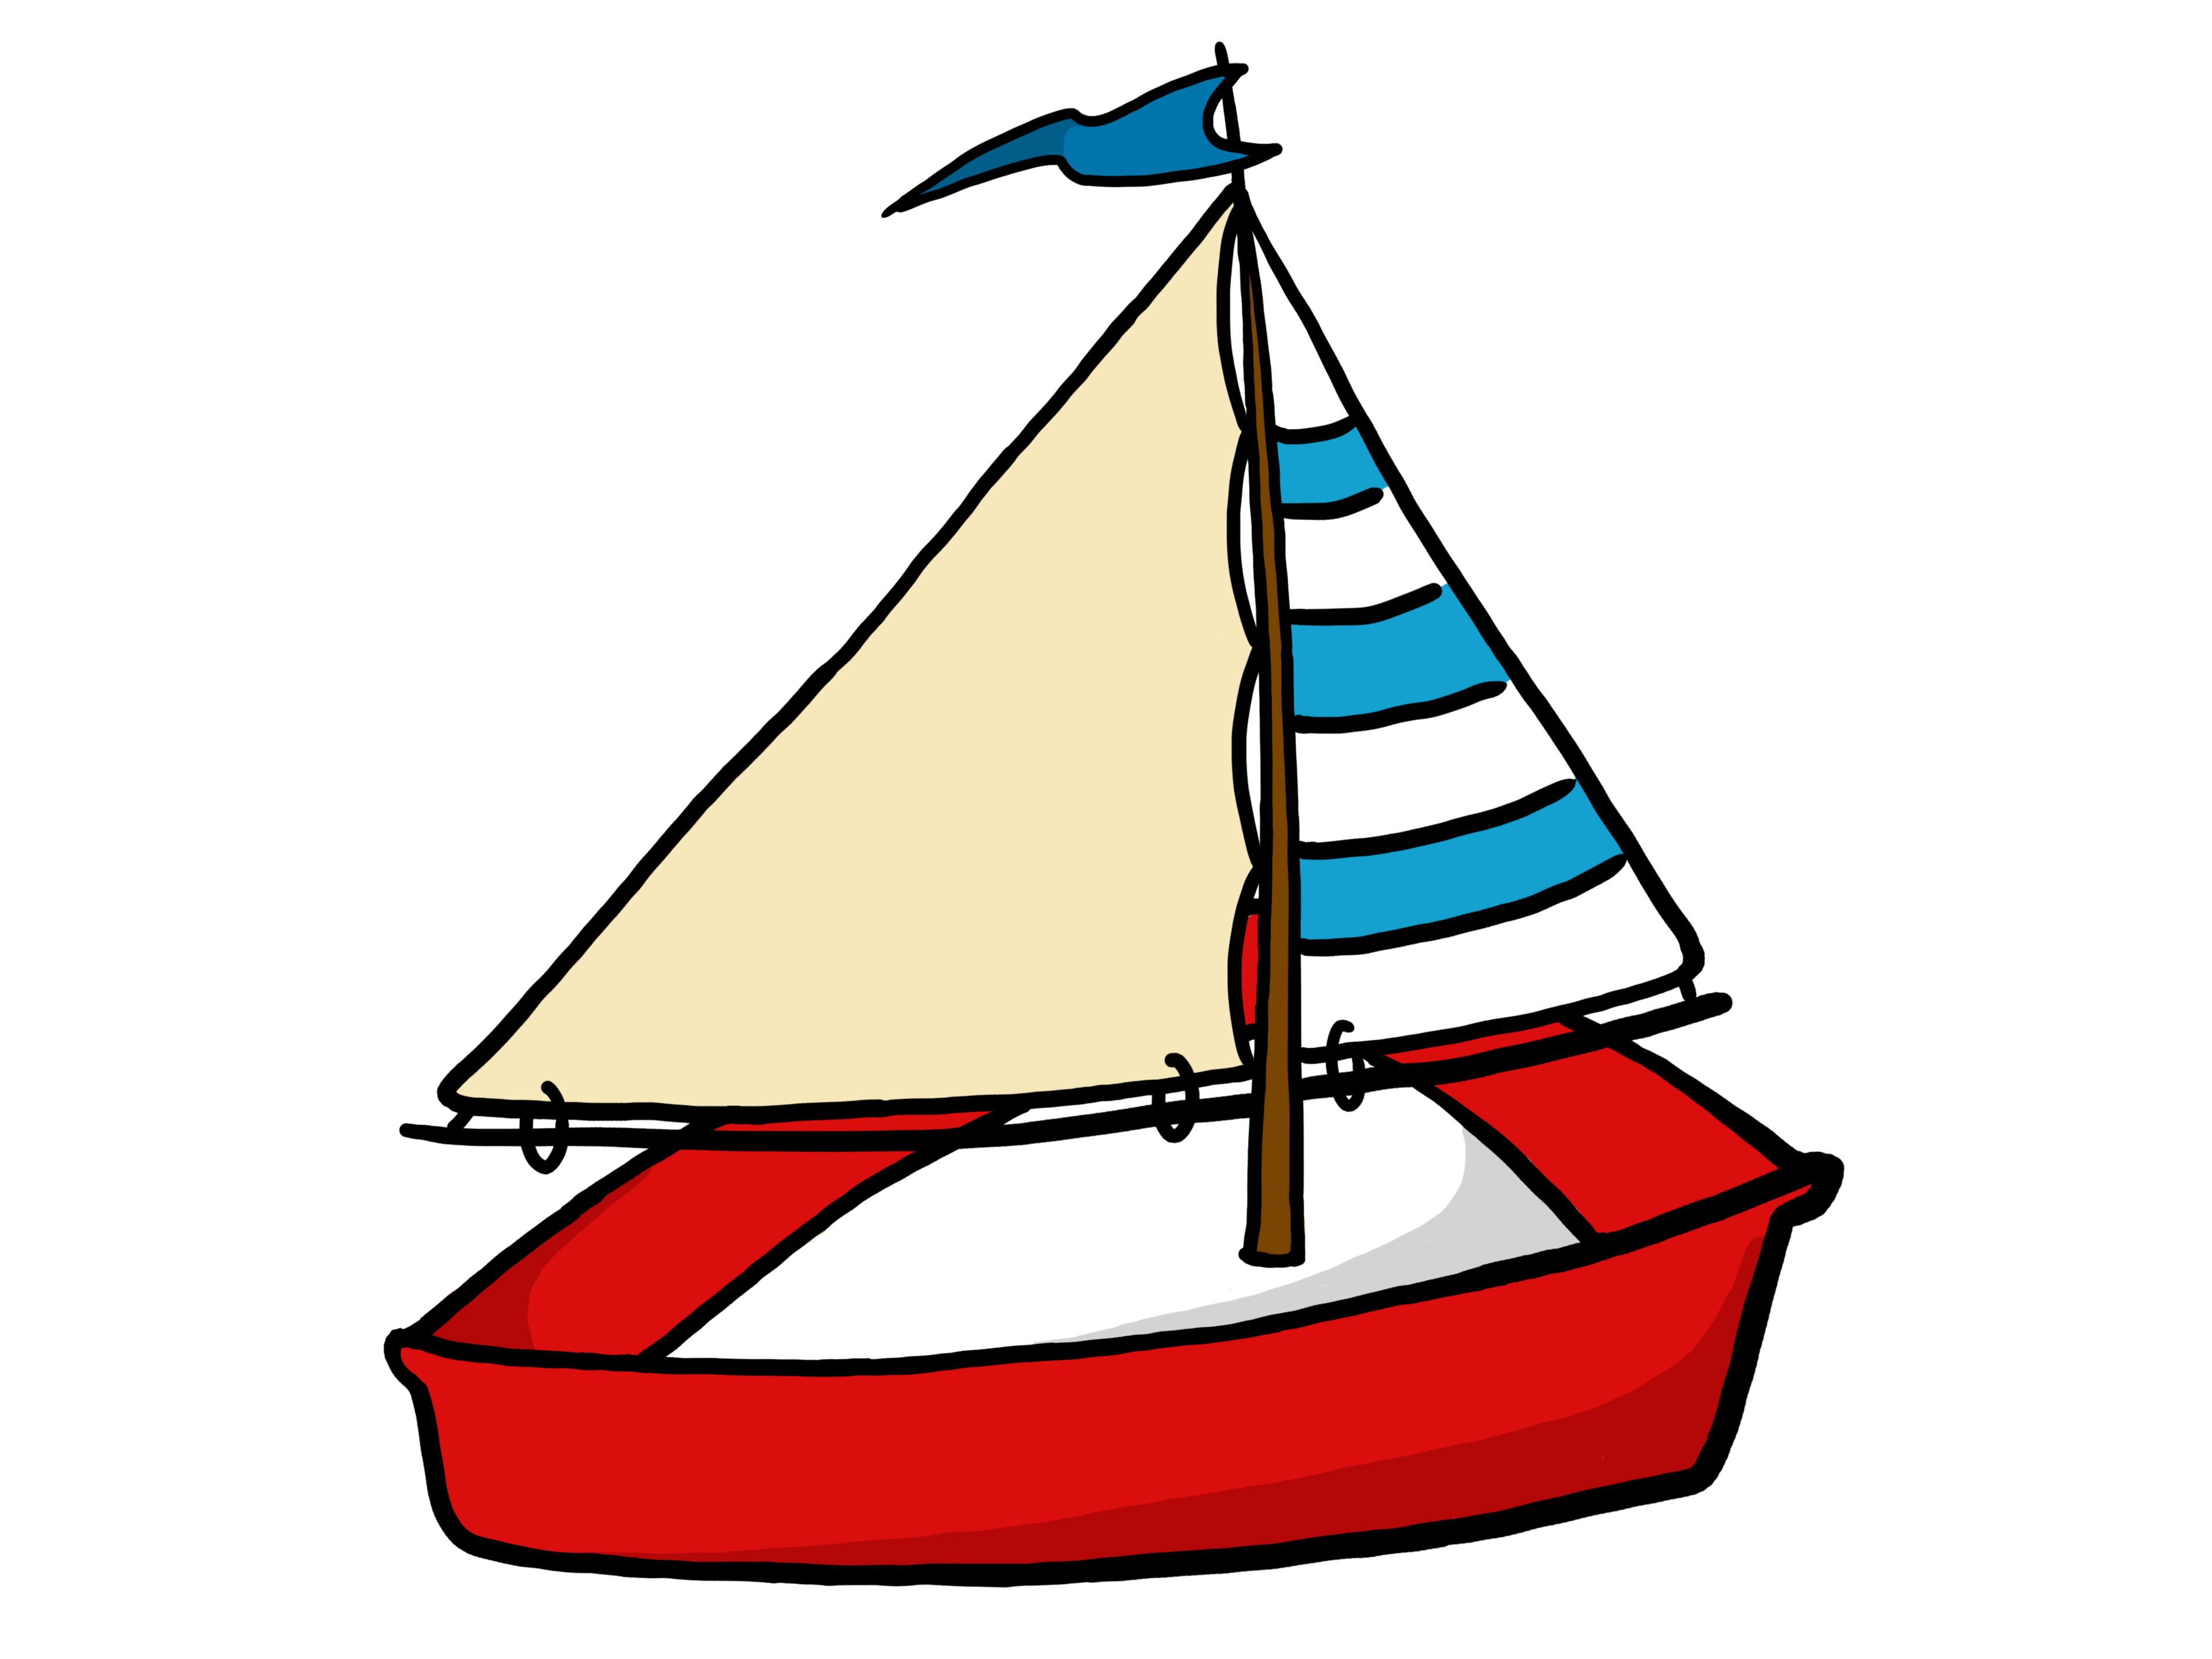 Nautical Sailboat Clipart | Free download best Nautical Sailboat ...